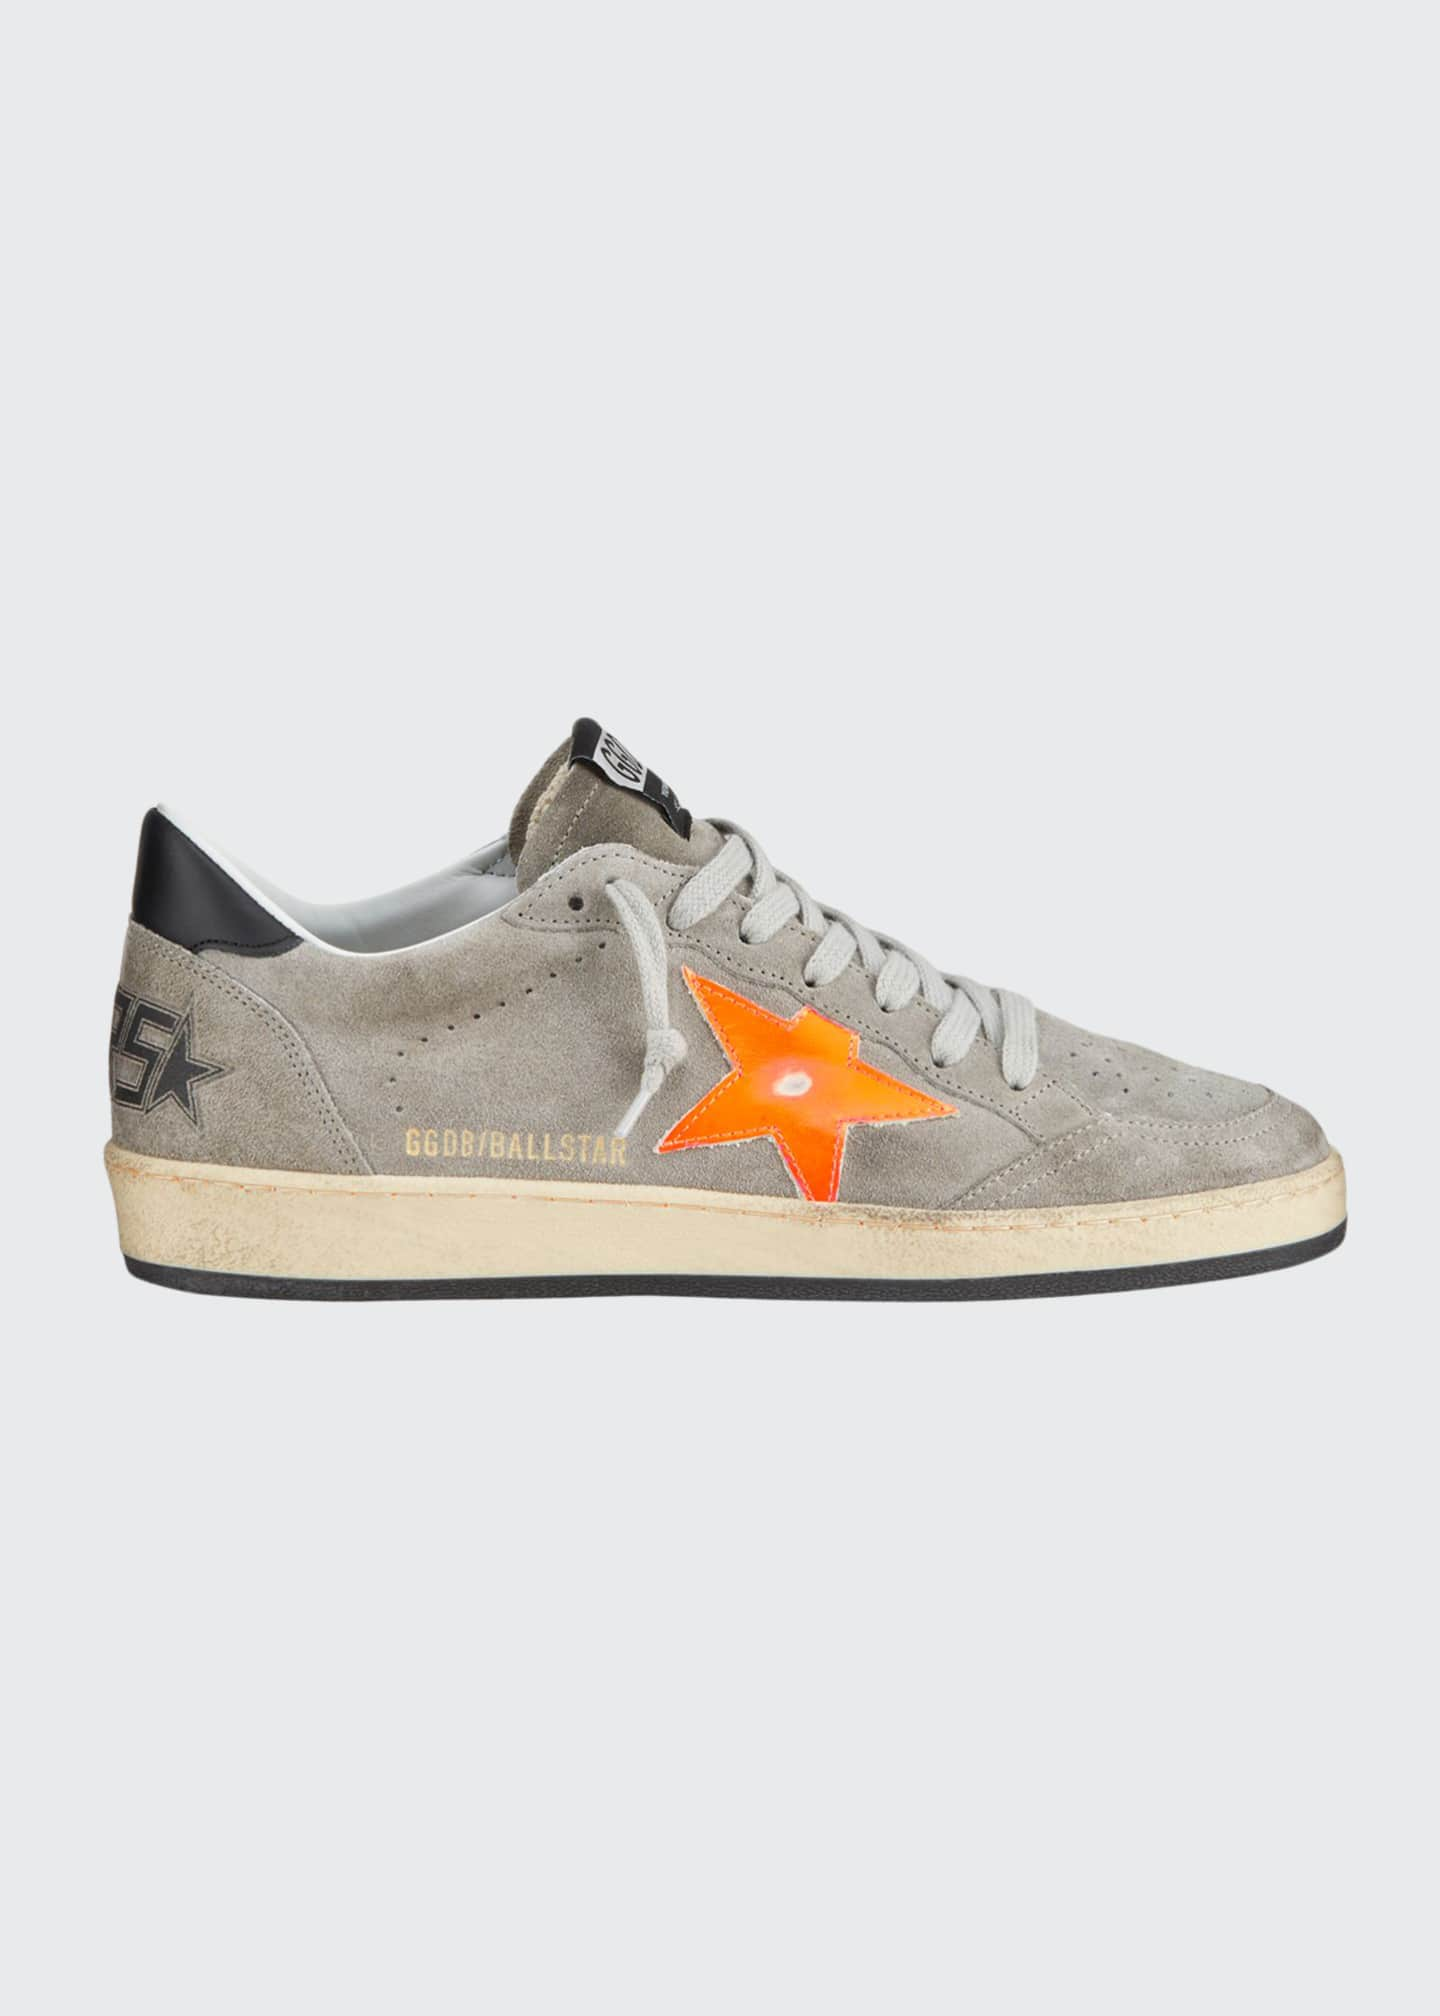 Image 1 of 4: Men's Ball Star Vintage Suede Sneakers